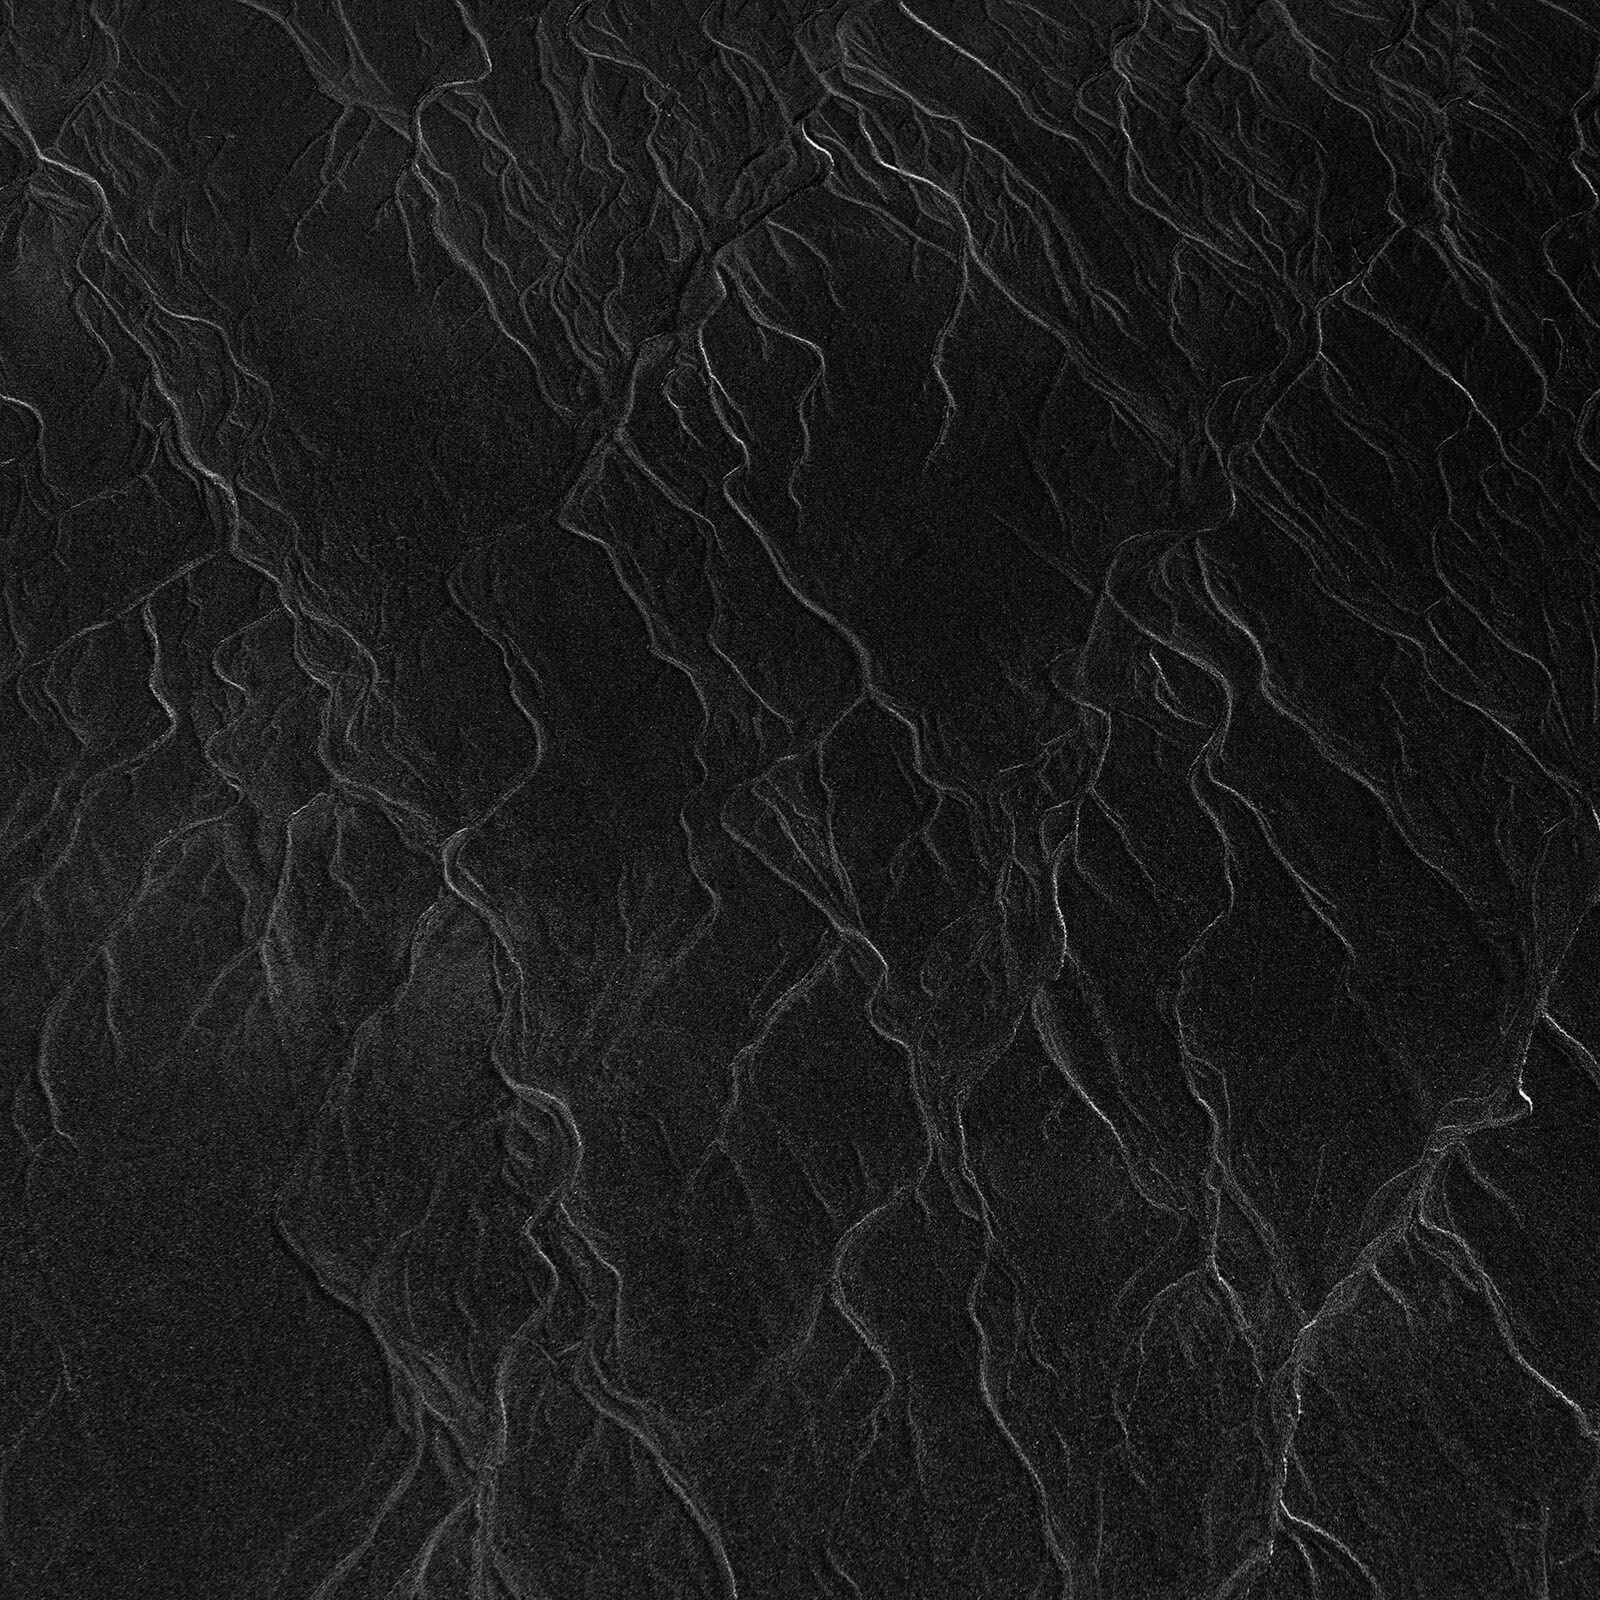 Waves of Sand - Texture - Black & White Fine Art Photography Series